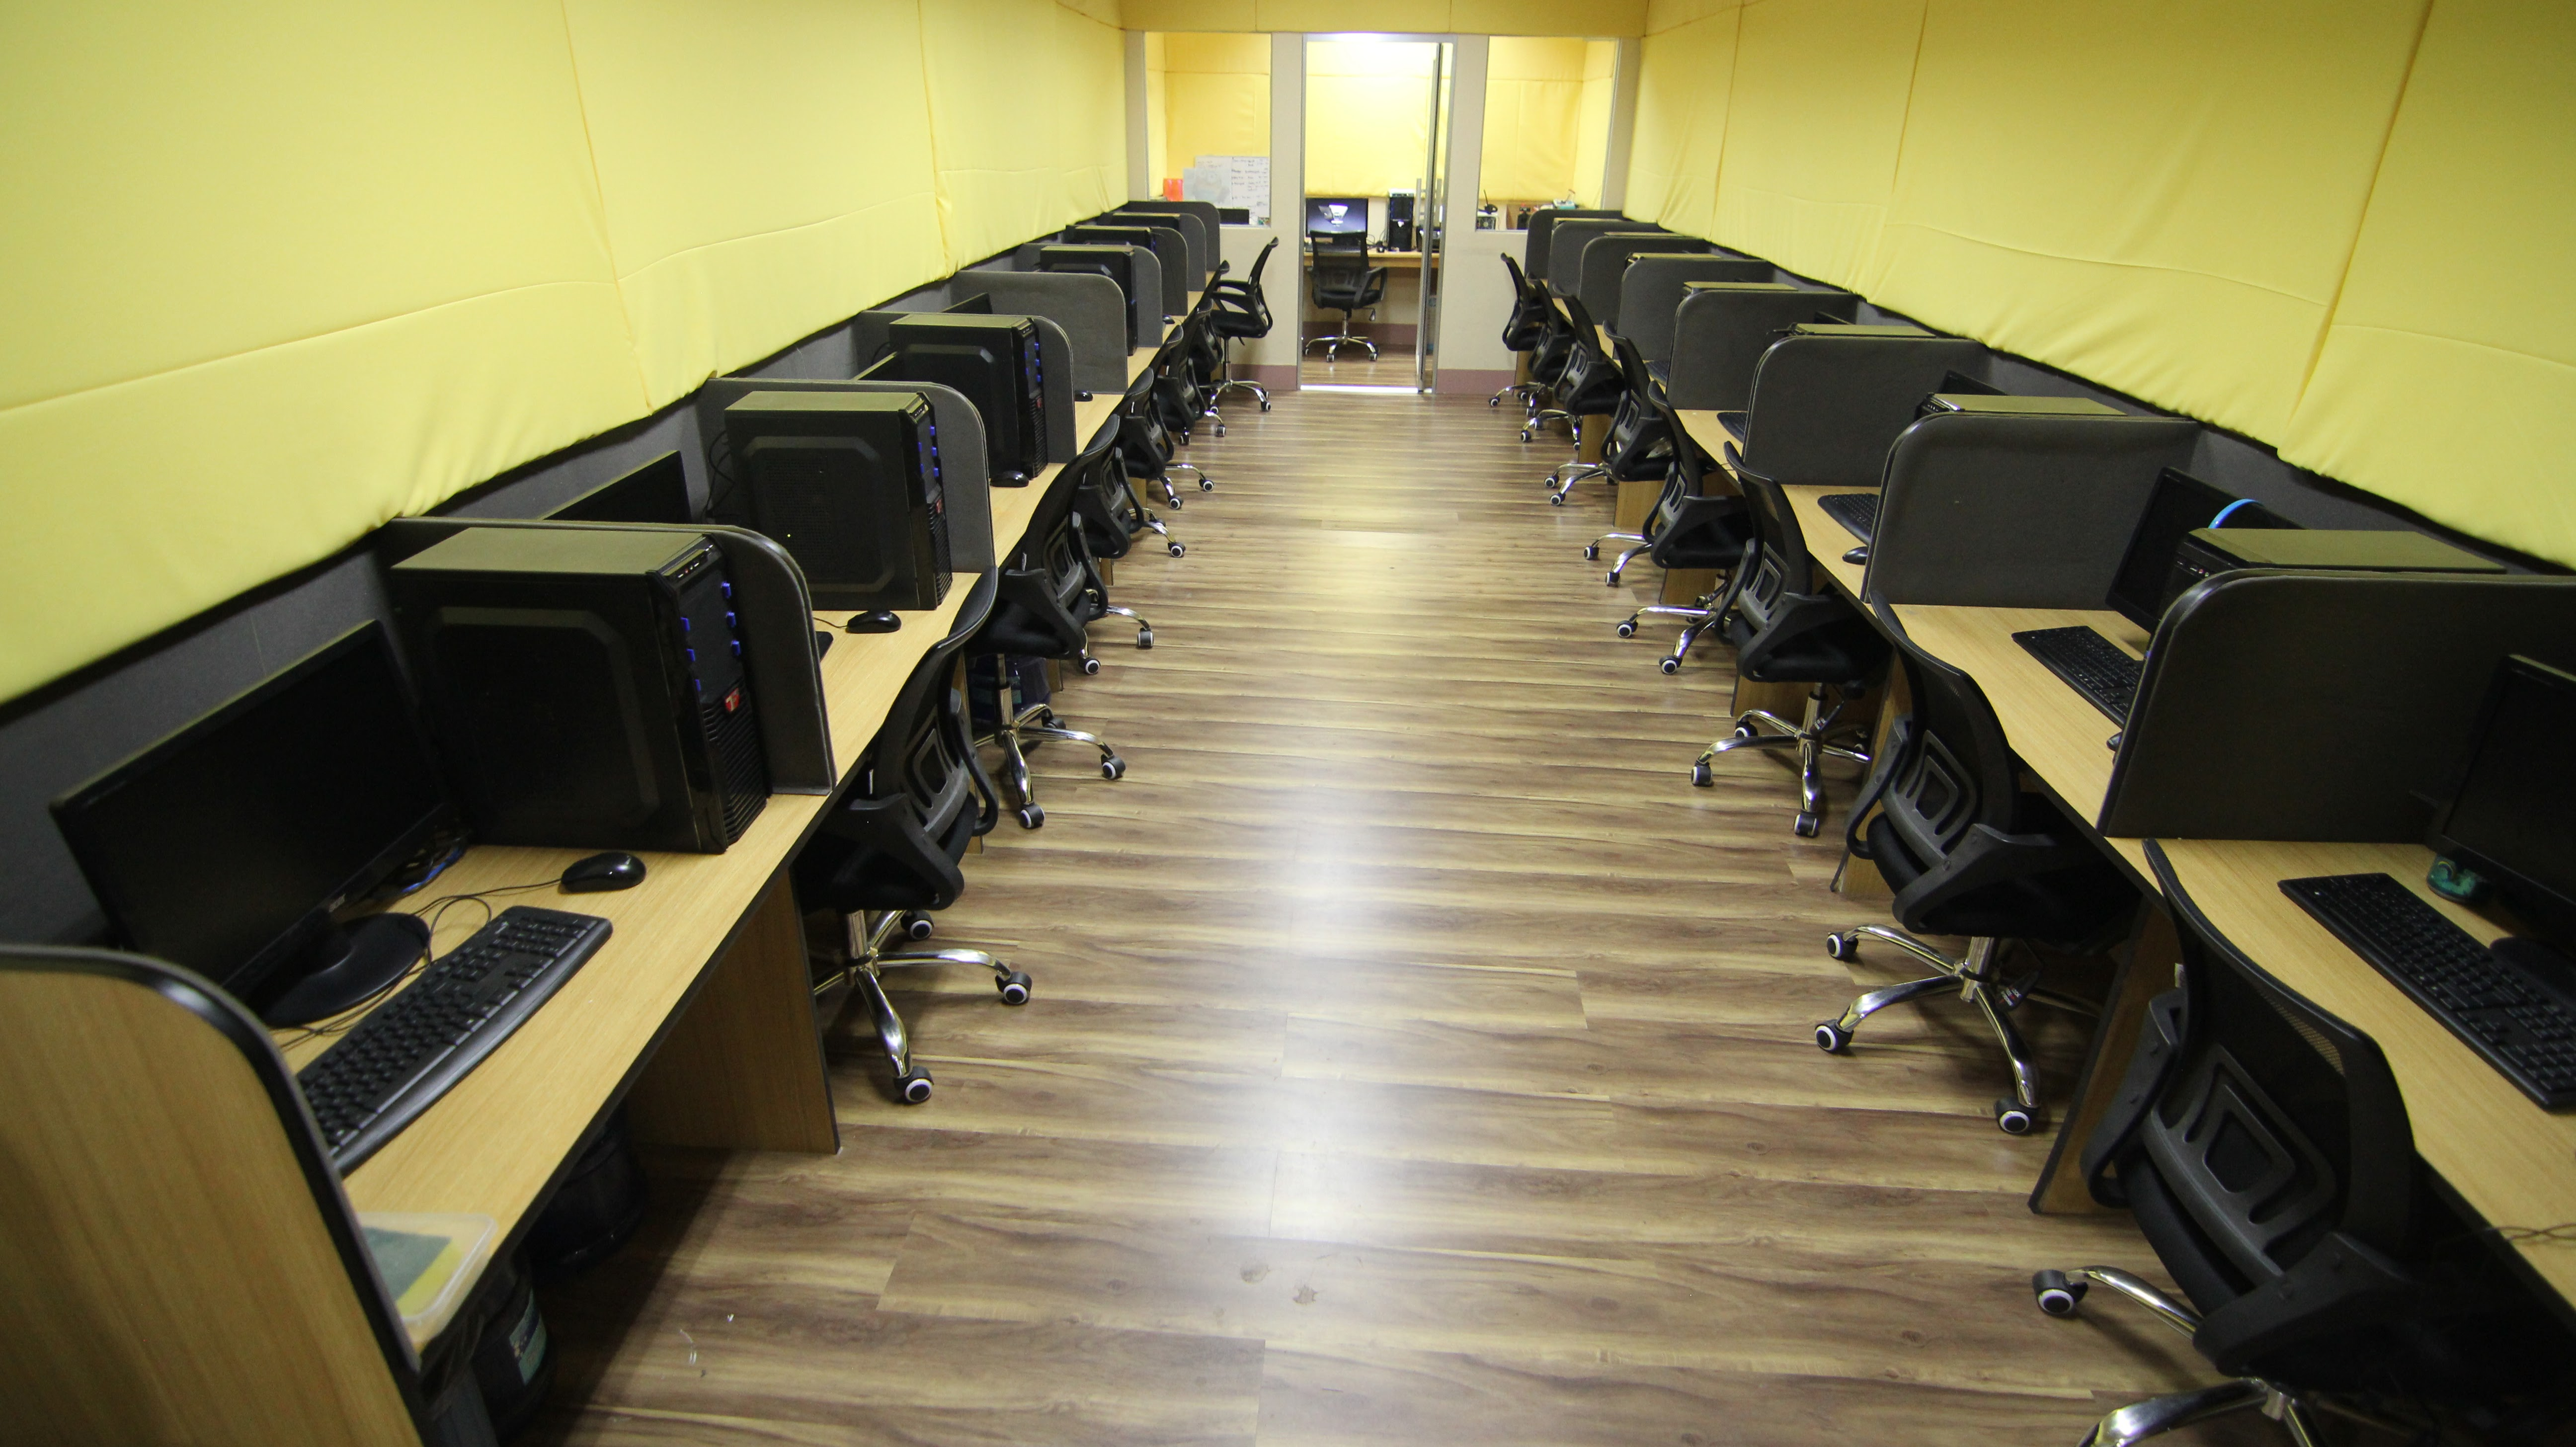 Call Center Leasing Solutions – Office Rental/Seat Leasing